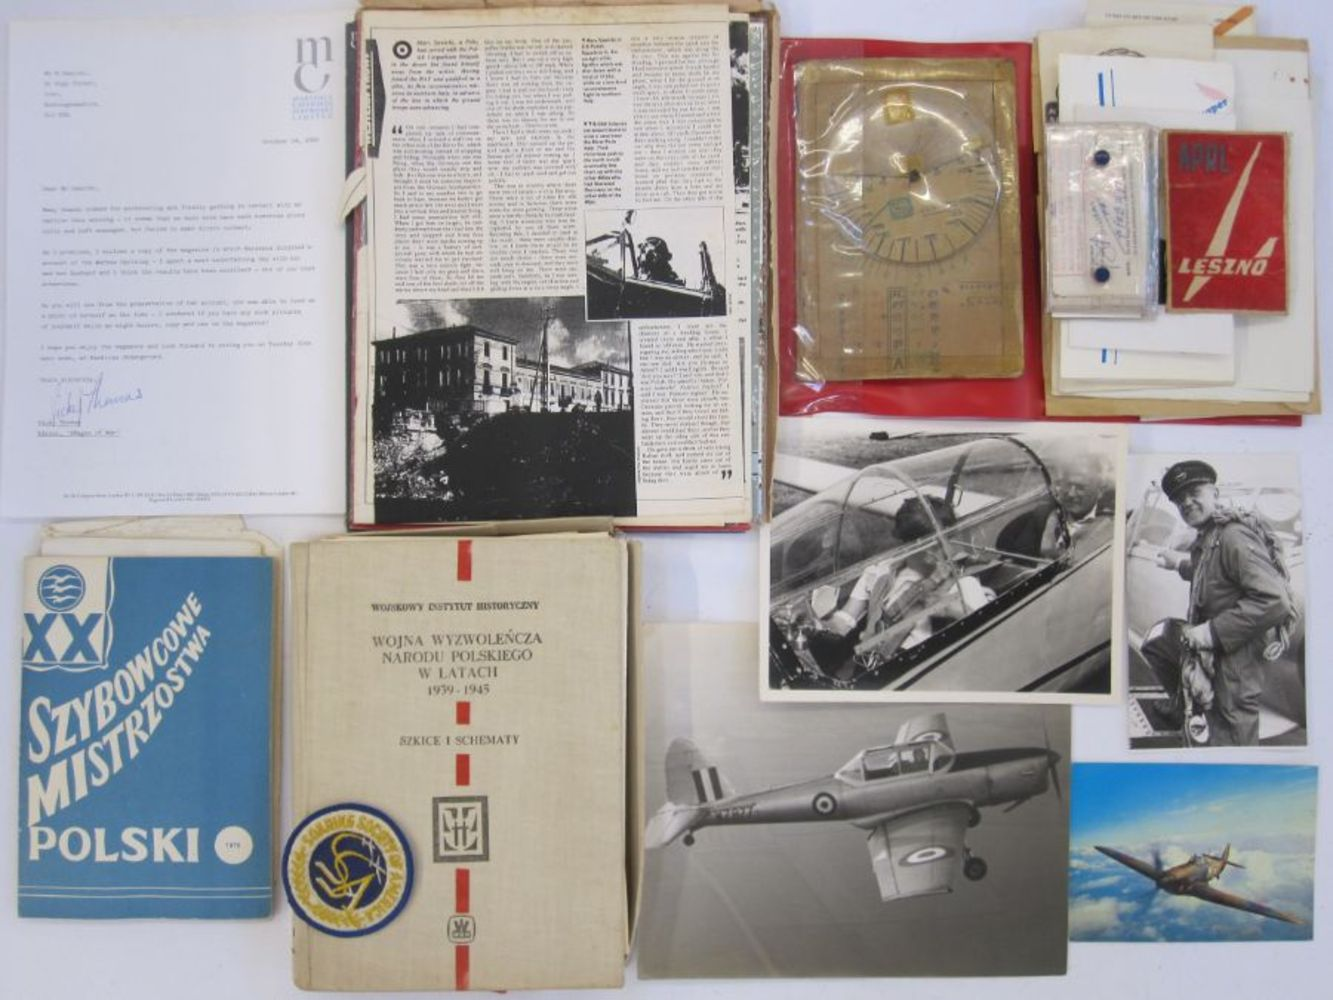 Books, Medals, Militaria, Collectables - Cheltenham - Cotswold Auction Company